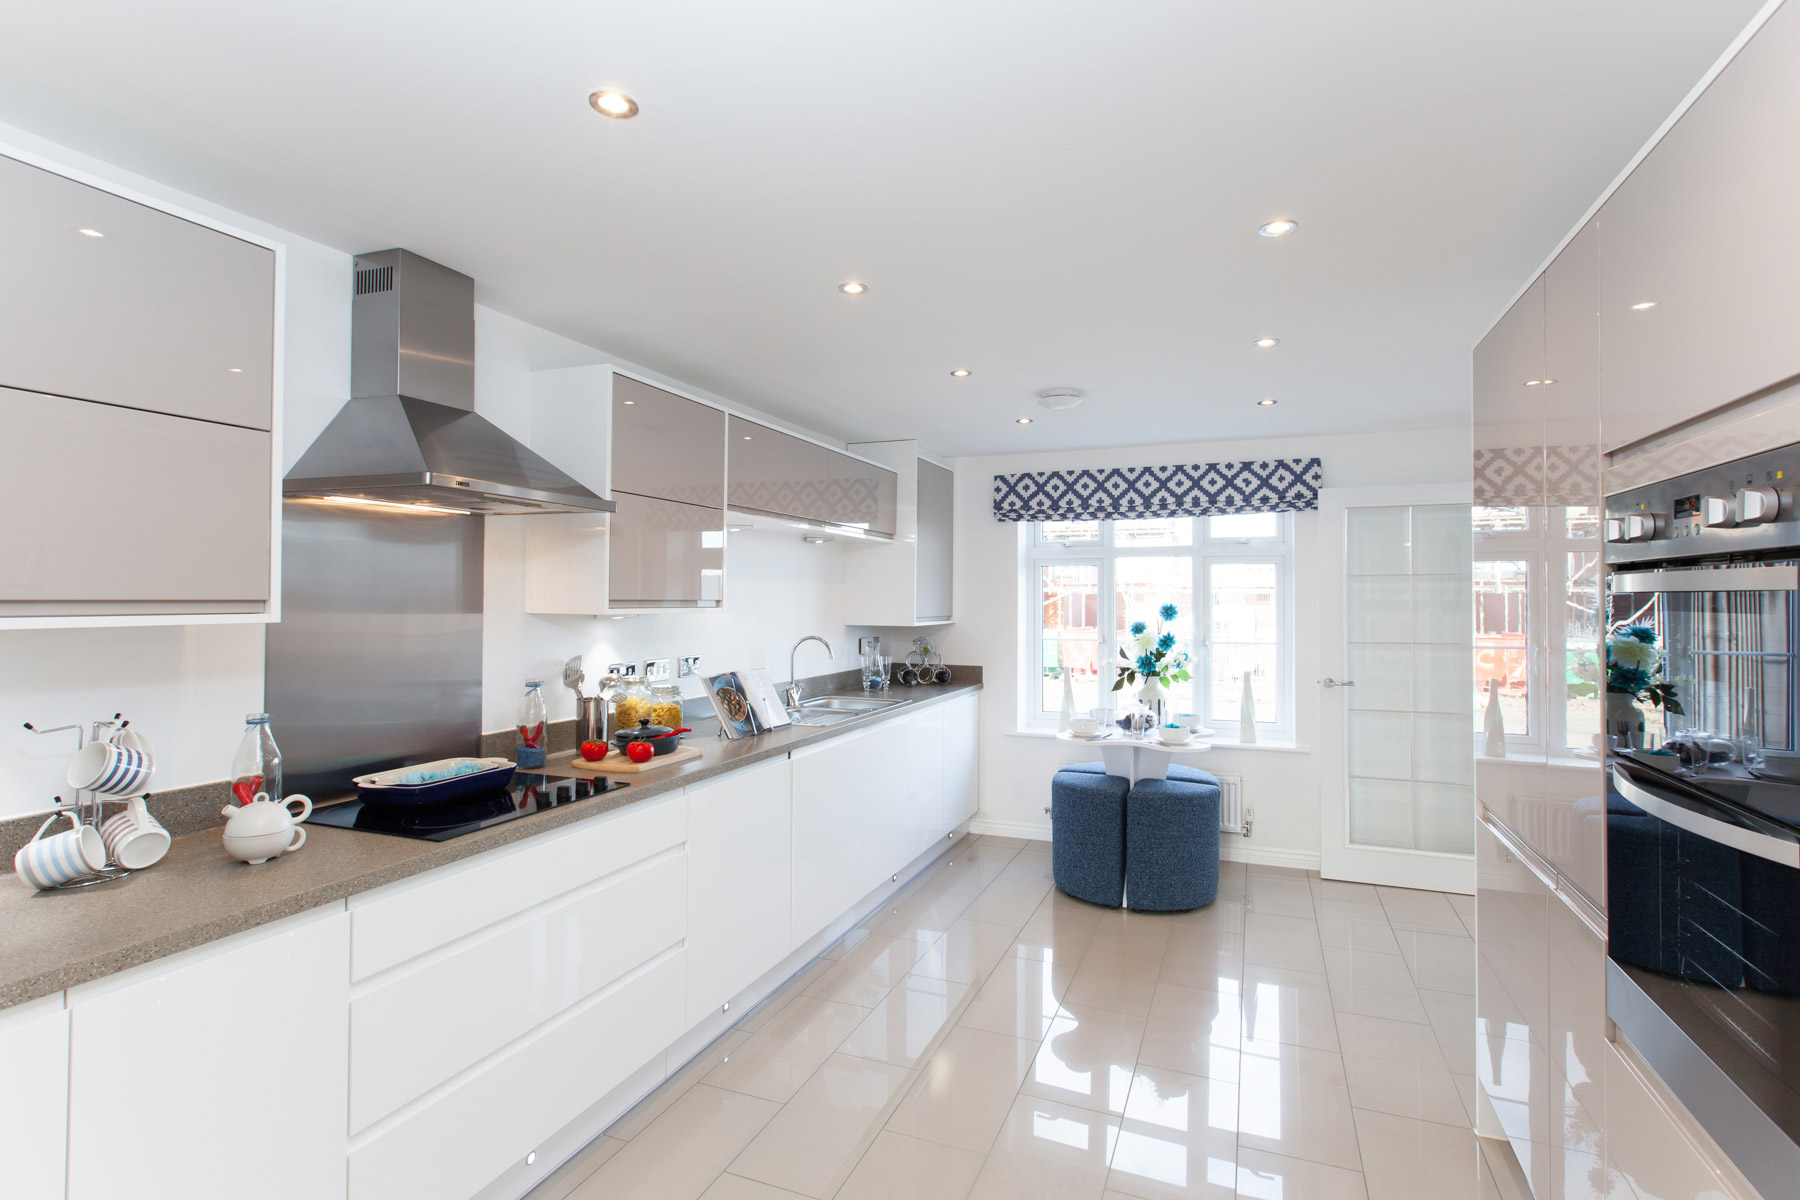 TW Exeter - Copleston Heights - Thornford example kitchen